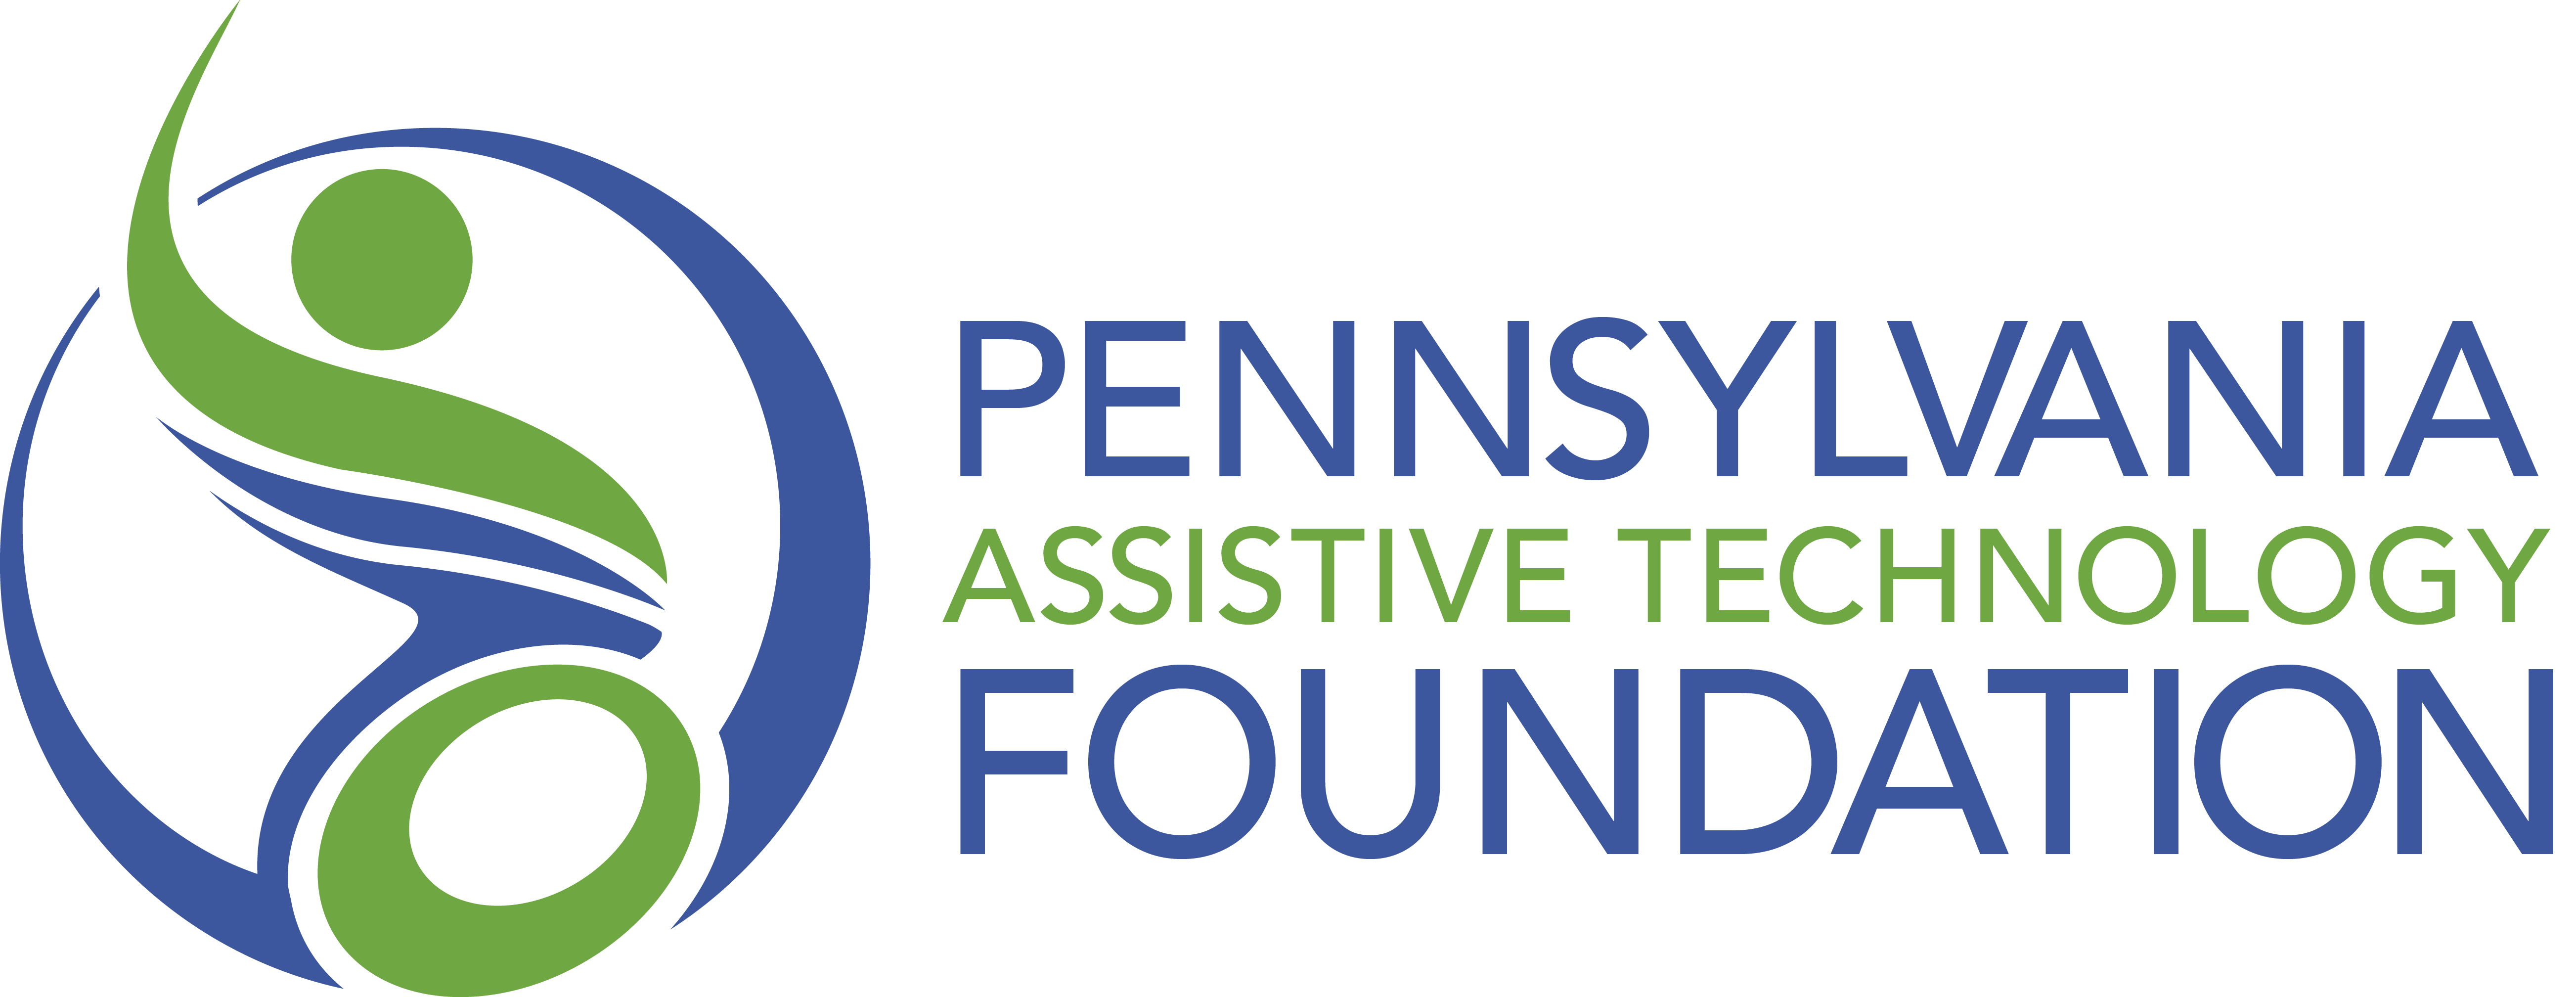 Pennsylvania Assistive Technology Foundation